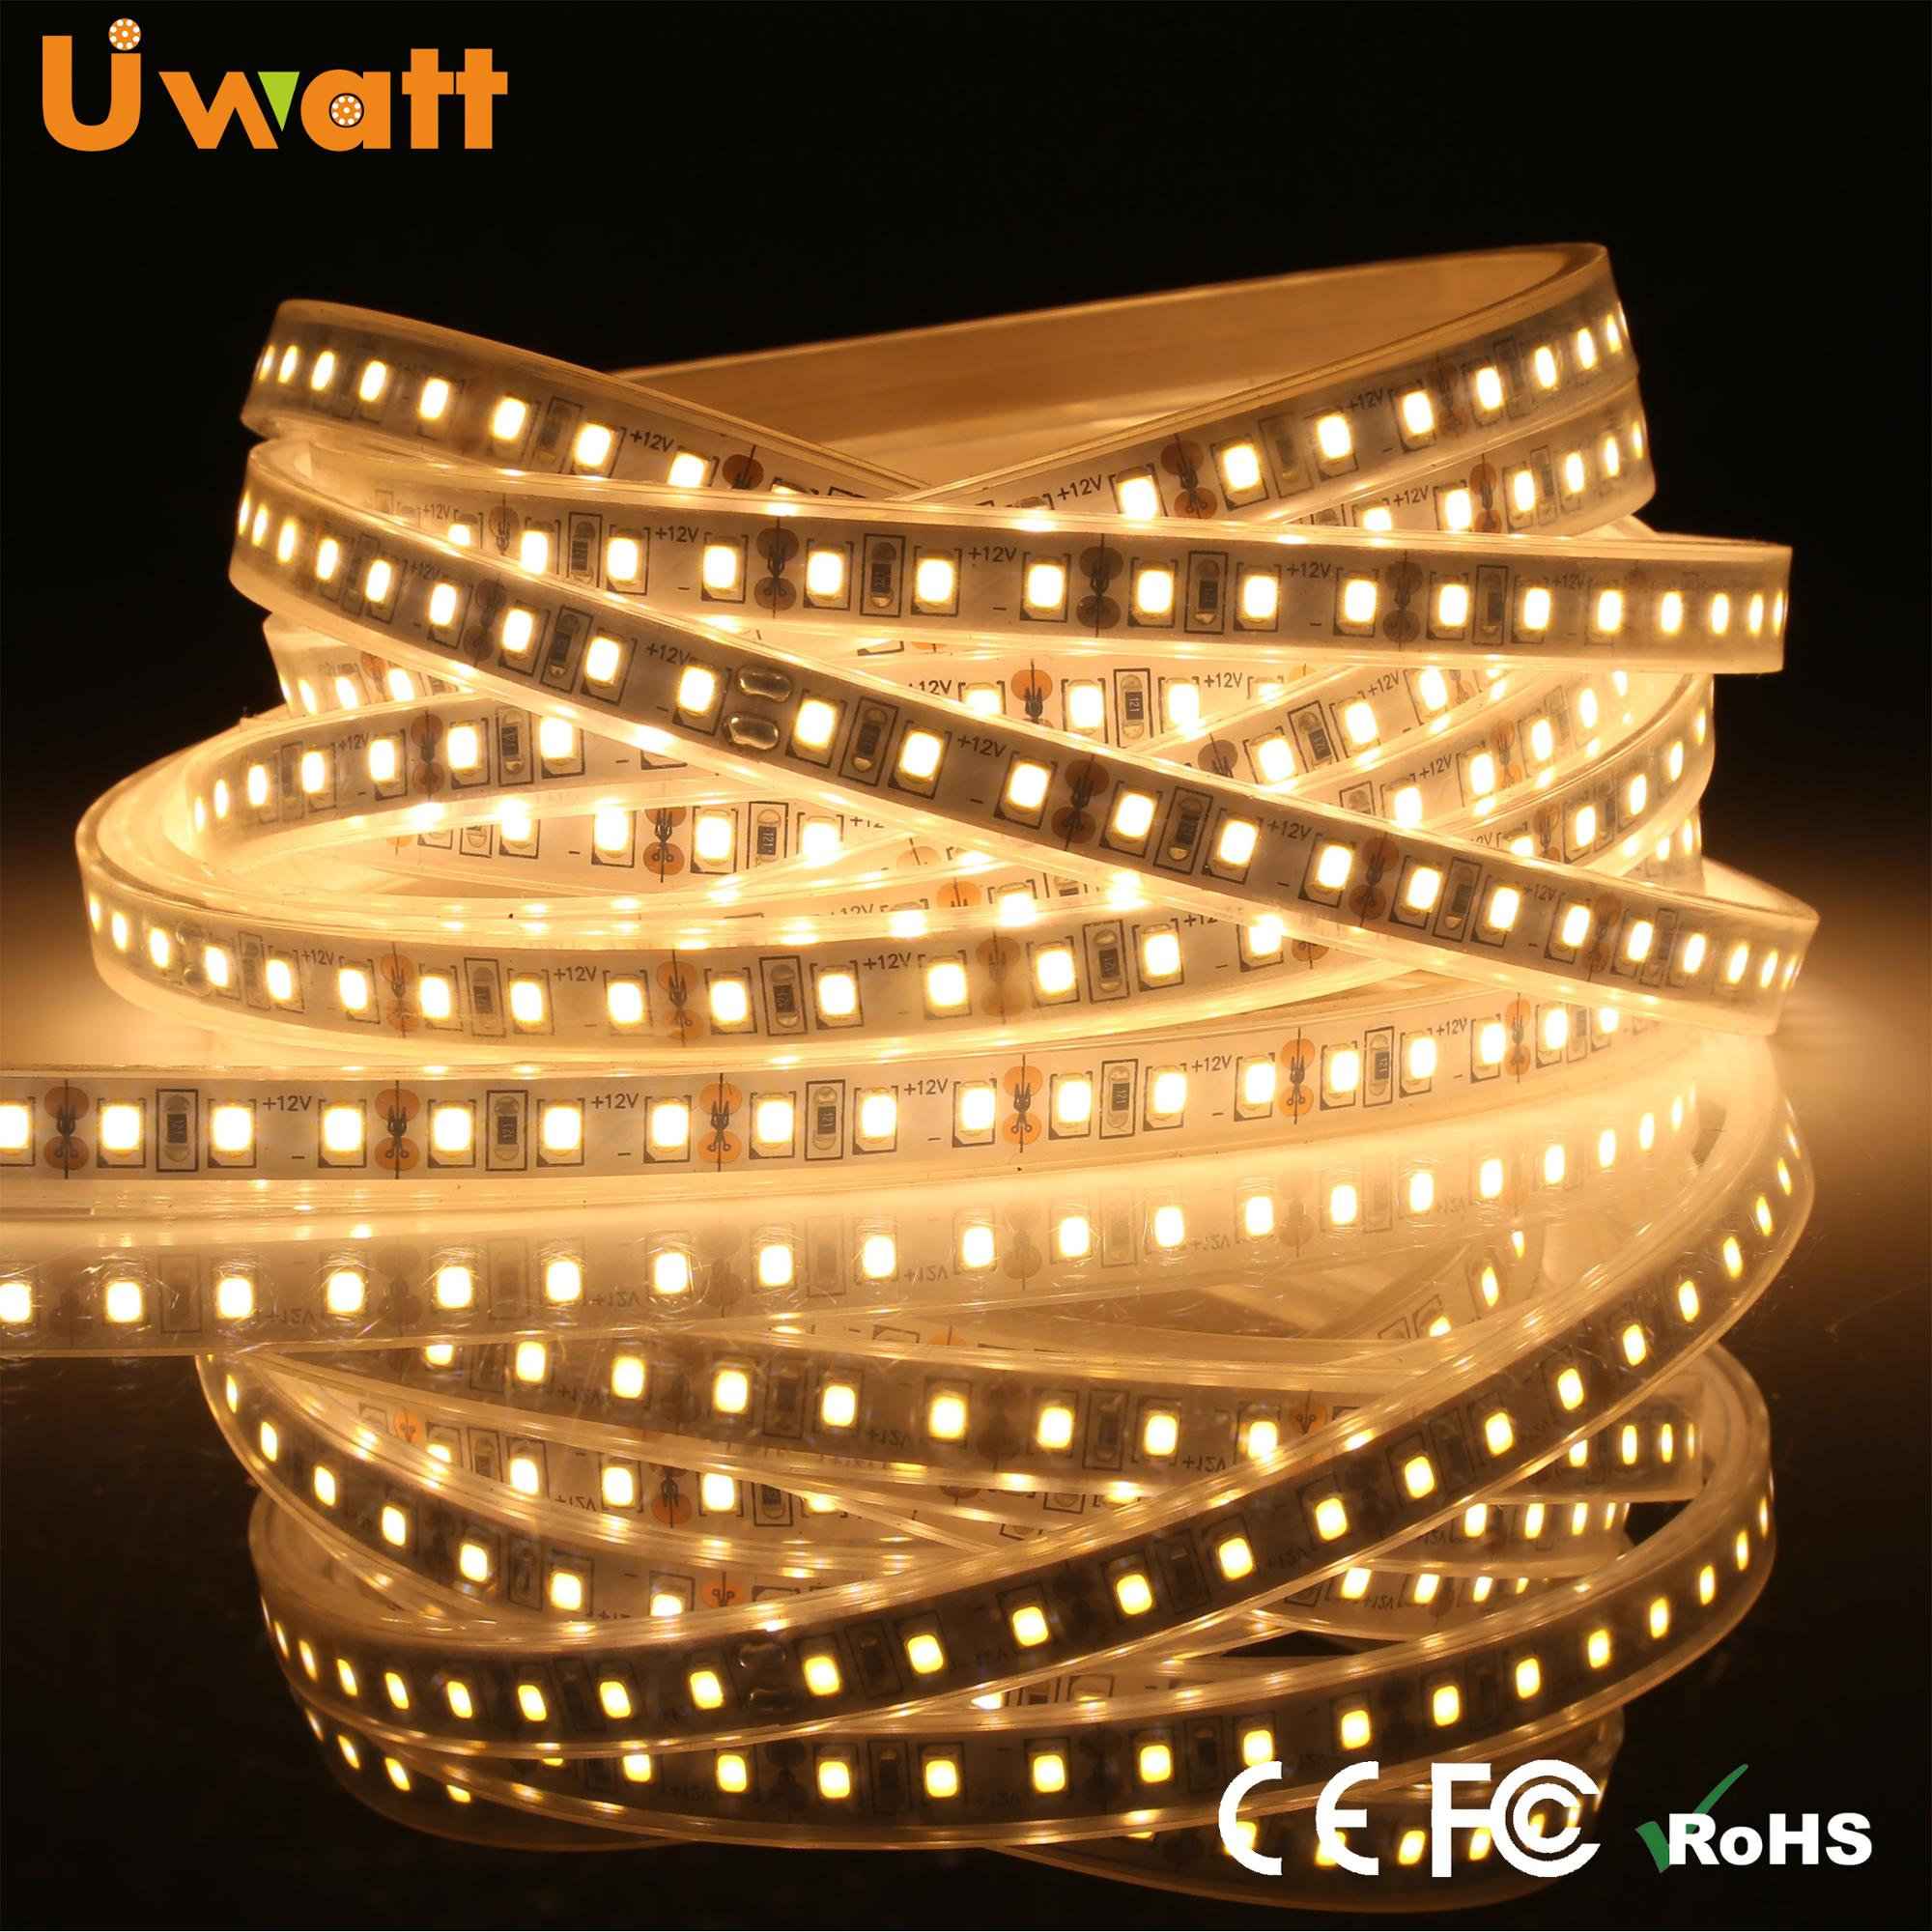 Uwatt DC12V 60 <strong>LED</strong> / m 2835 9W Flexible <strong>LED</strong> Strip